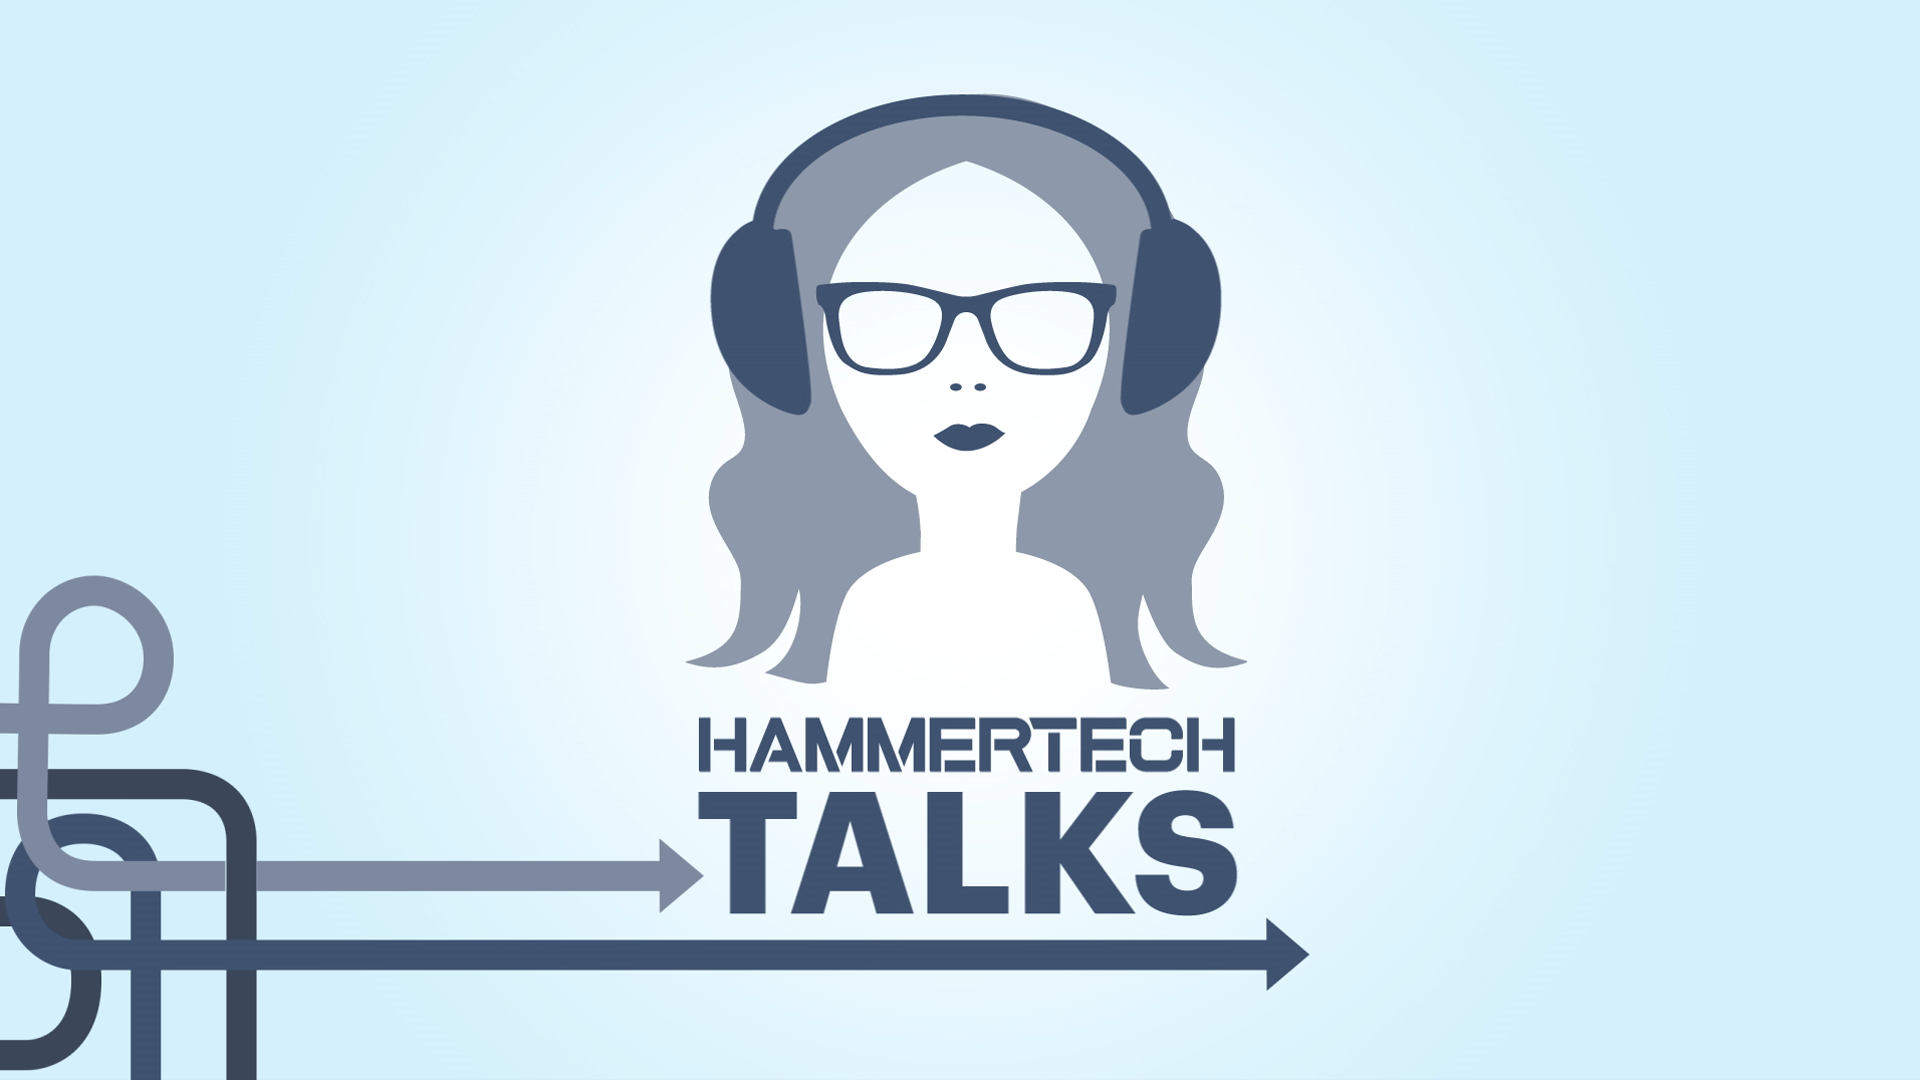 HammerTech Talks with Cal Beyer, VP of Workforce Risk and Worker Wellbeing at CSDZ